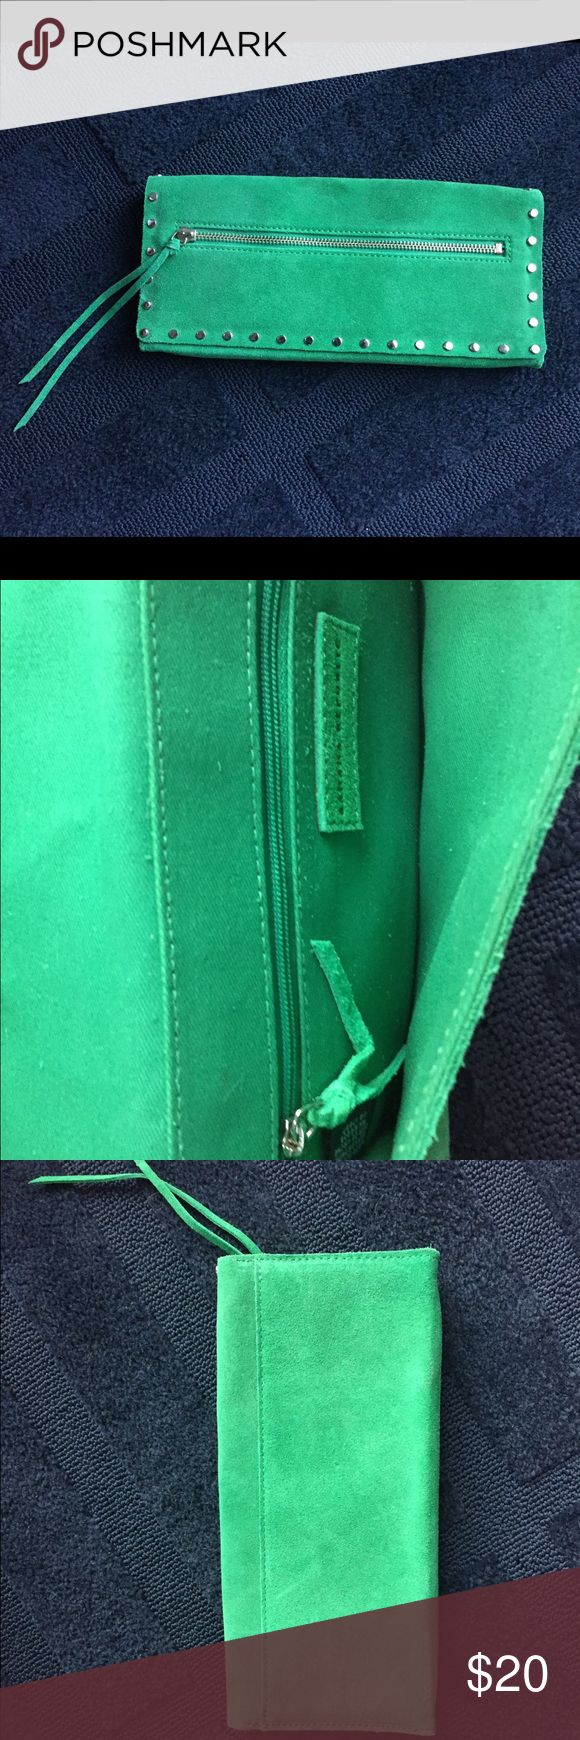 NWOT Banana Republic Green Suede Clutch Banana Republic Green Suede Clutch. NWOT never used! Smoke free home. Excellent condition. Banana Republic Bags Clutches & Wristlets